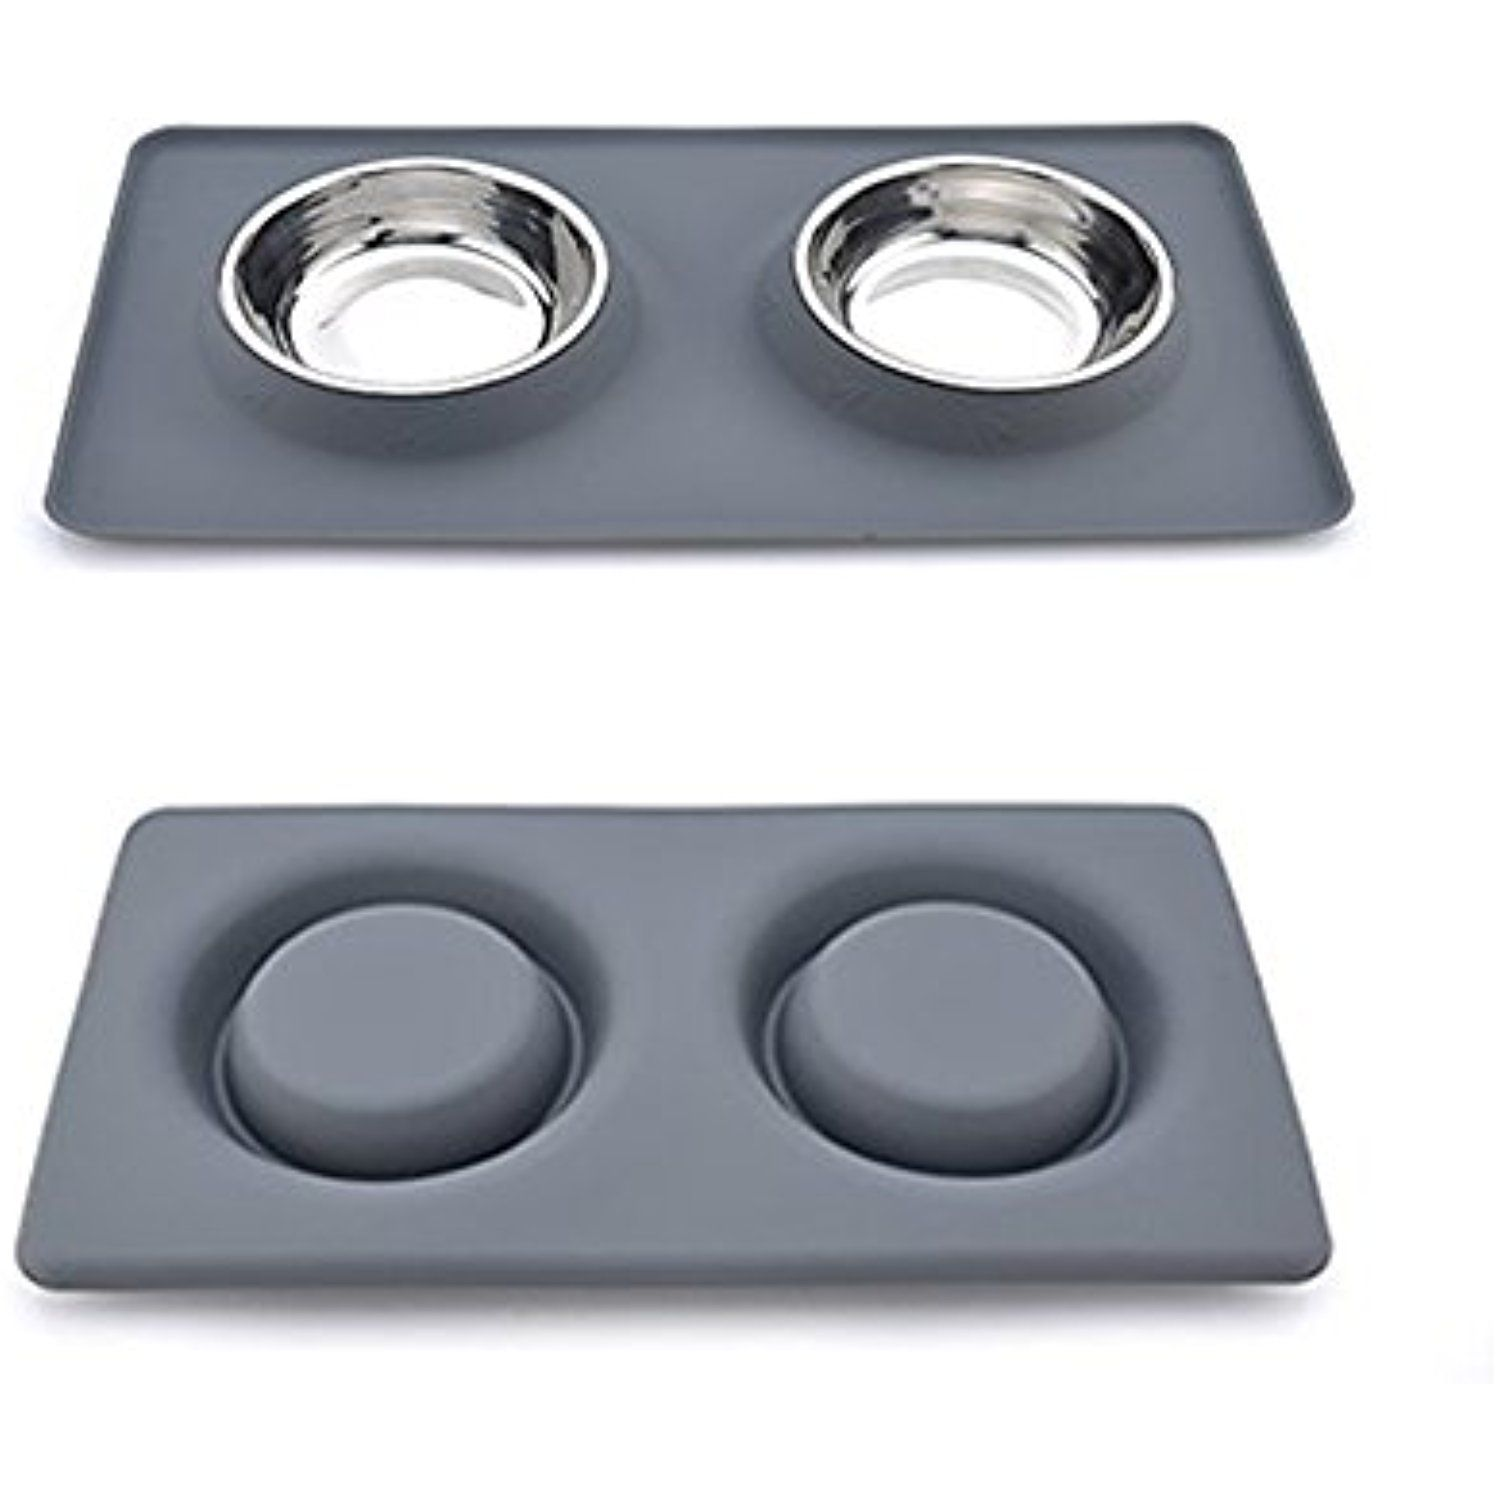 bowl pawfect bowls pppbmbowl replacement products pets mat mats pet